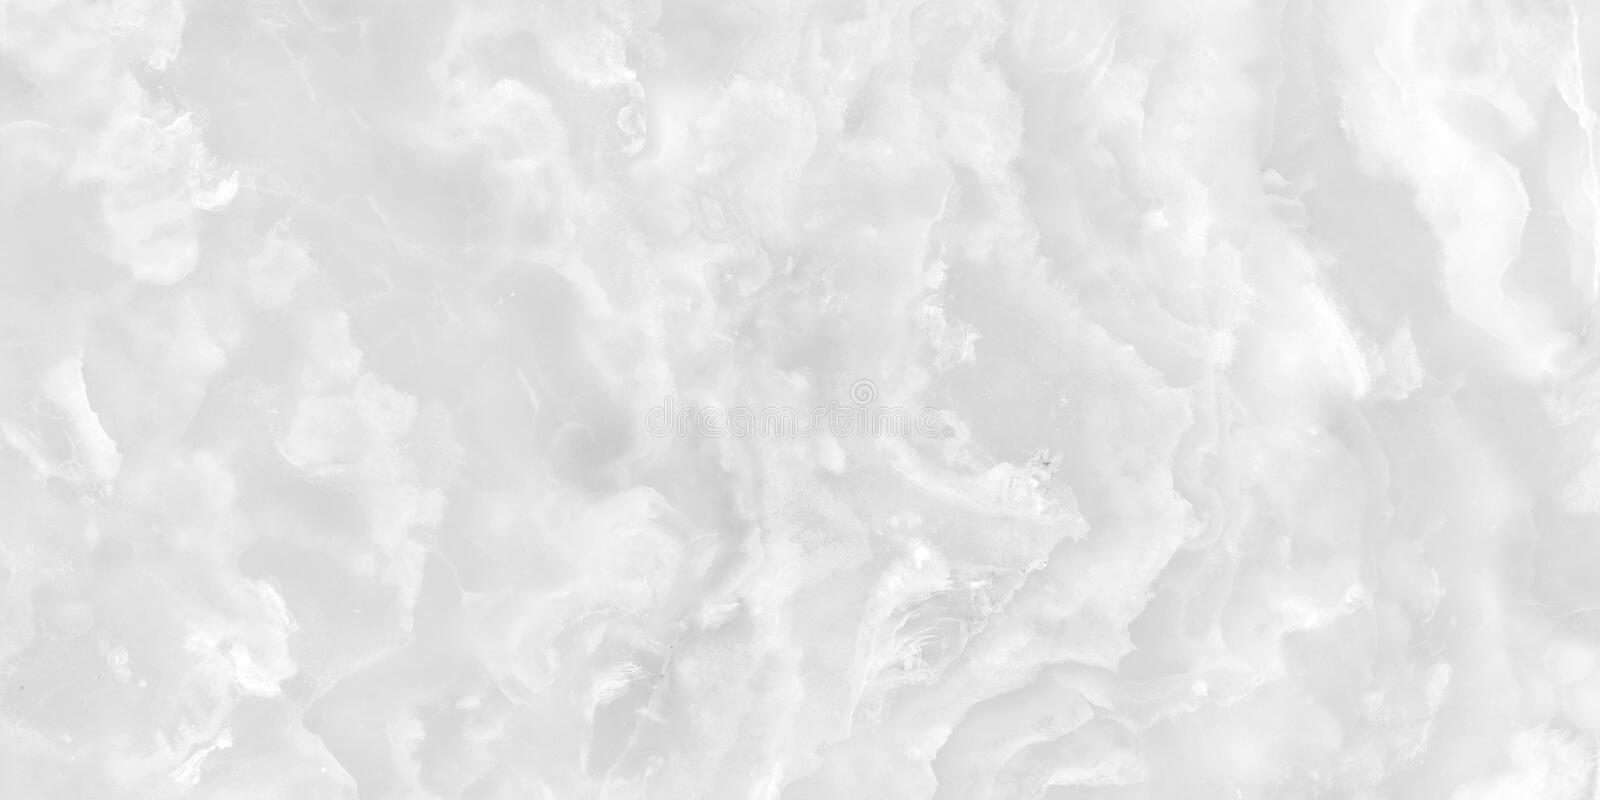 White marble pattern with curly soft veins. Abstract texture and background. 2D illustration royalty free stock photography